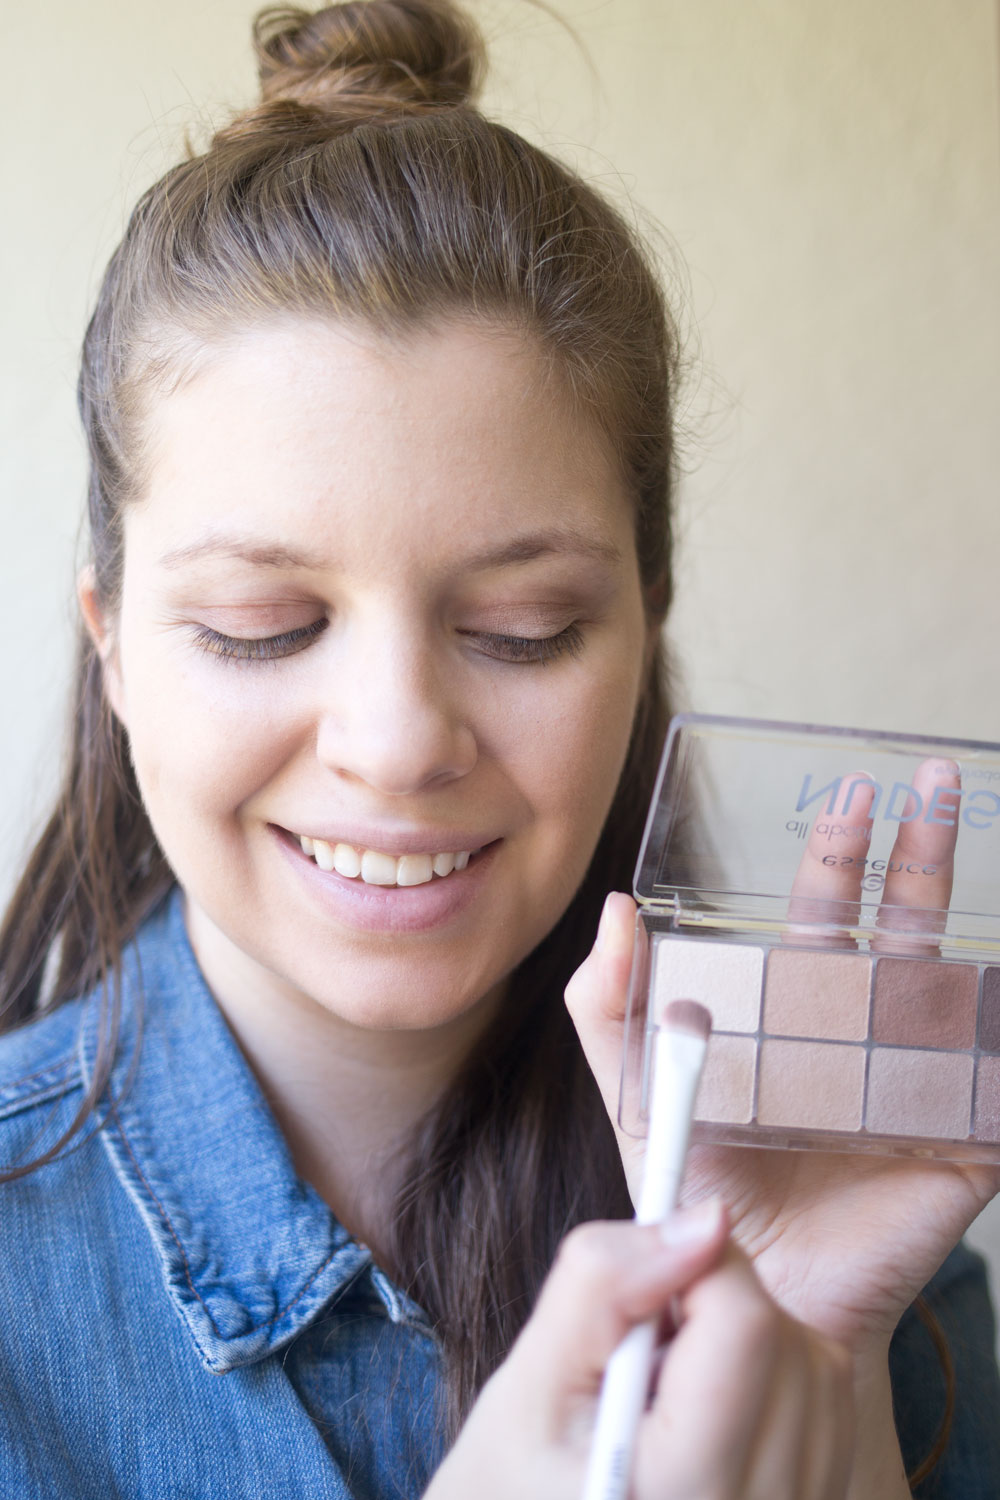 essence-cosmetics-all-about-eyes-nudes-eyeshadow-palette-tutorial